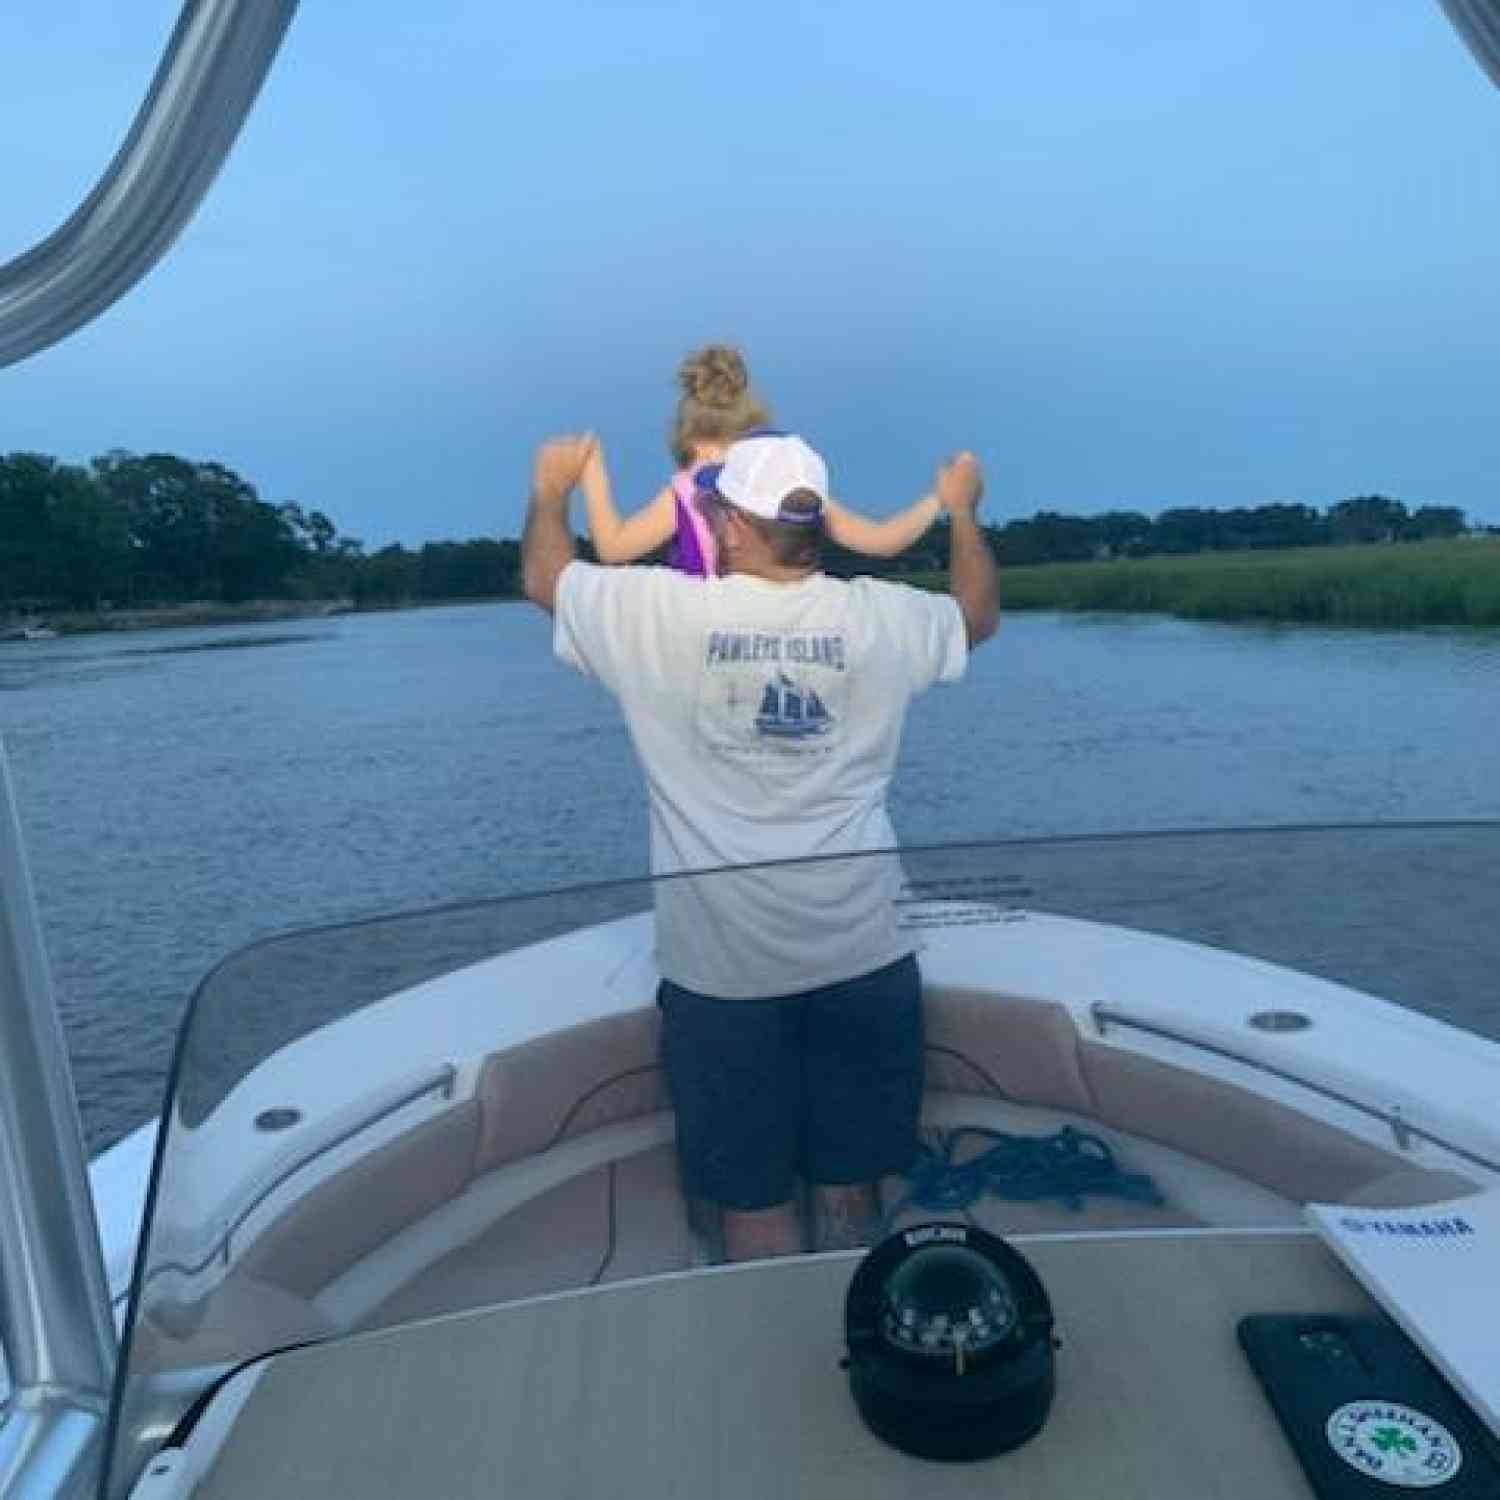 Title: I believe i can fly! - On board their Sportsman Open 212 Center Console - Location: Jerico River Richmond Hill, GA. Participating in the Photo Contest #SportsmanJuly2020